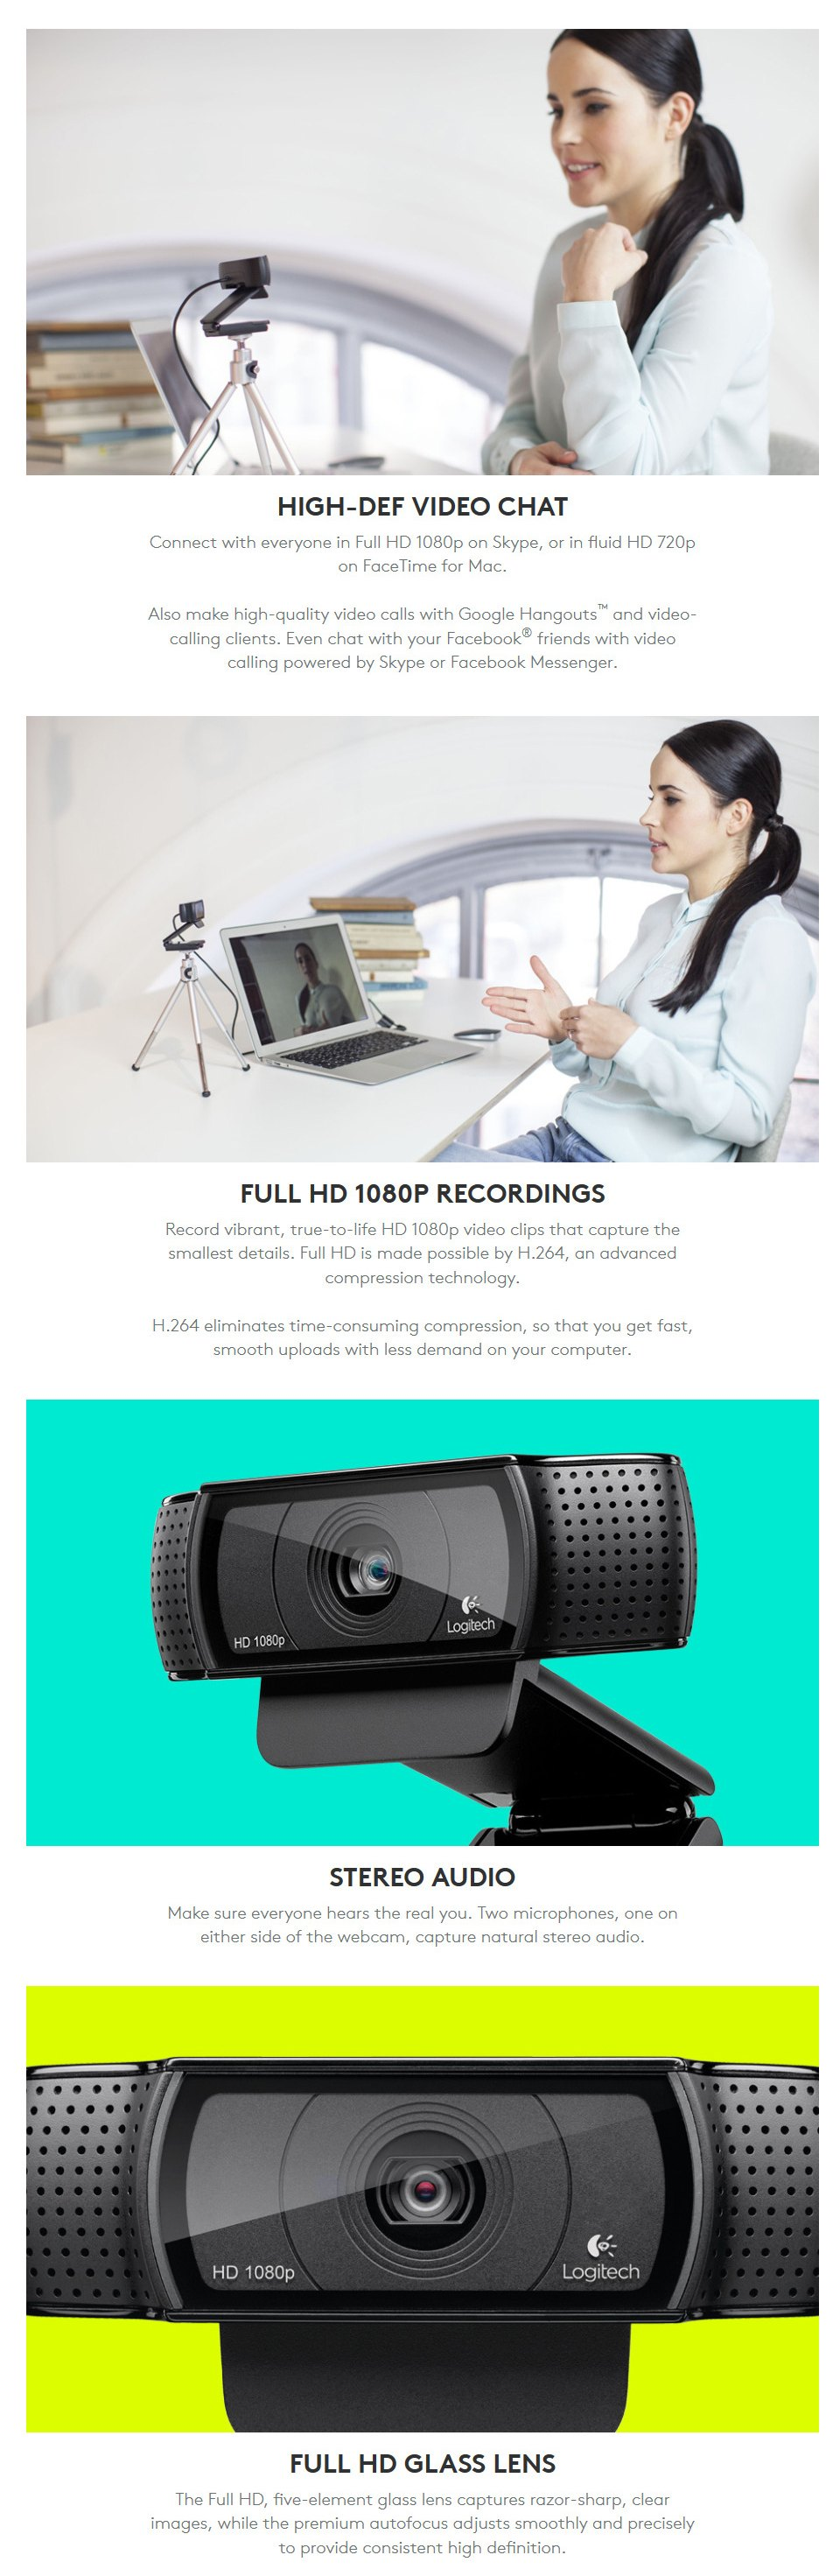 Logitech C920 HD Pro 1080P Webcam features